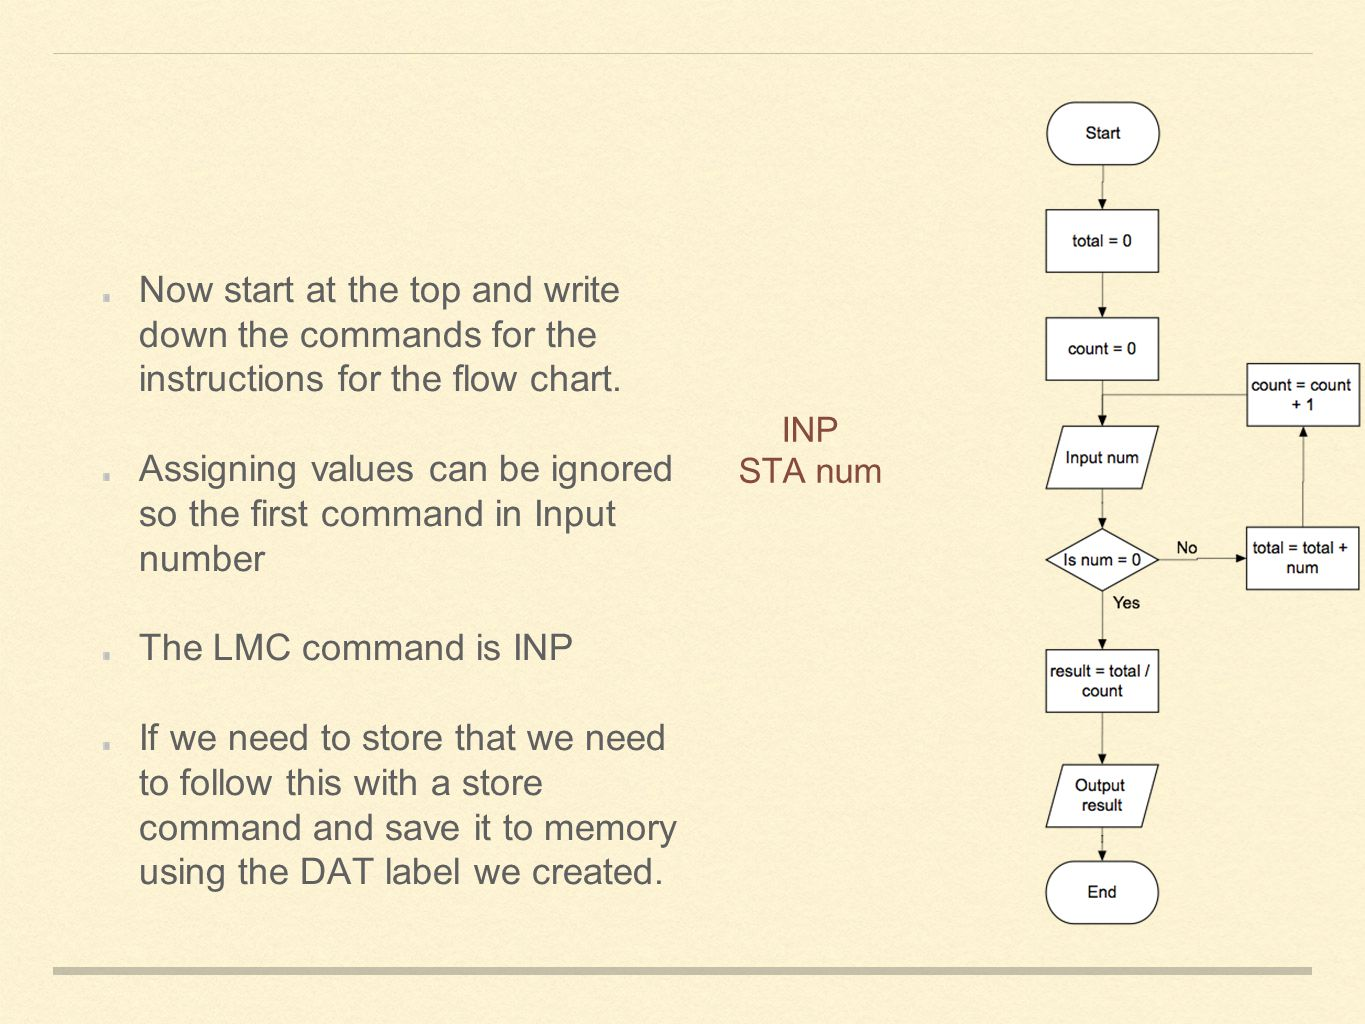 Assigning values can be ignored so the first command in Input number